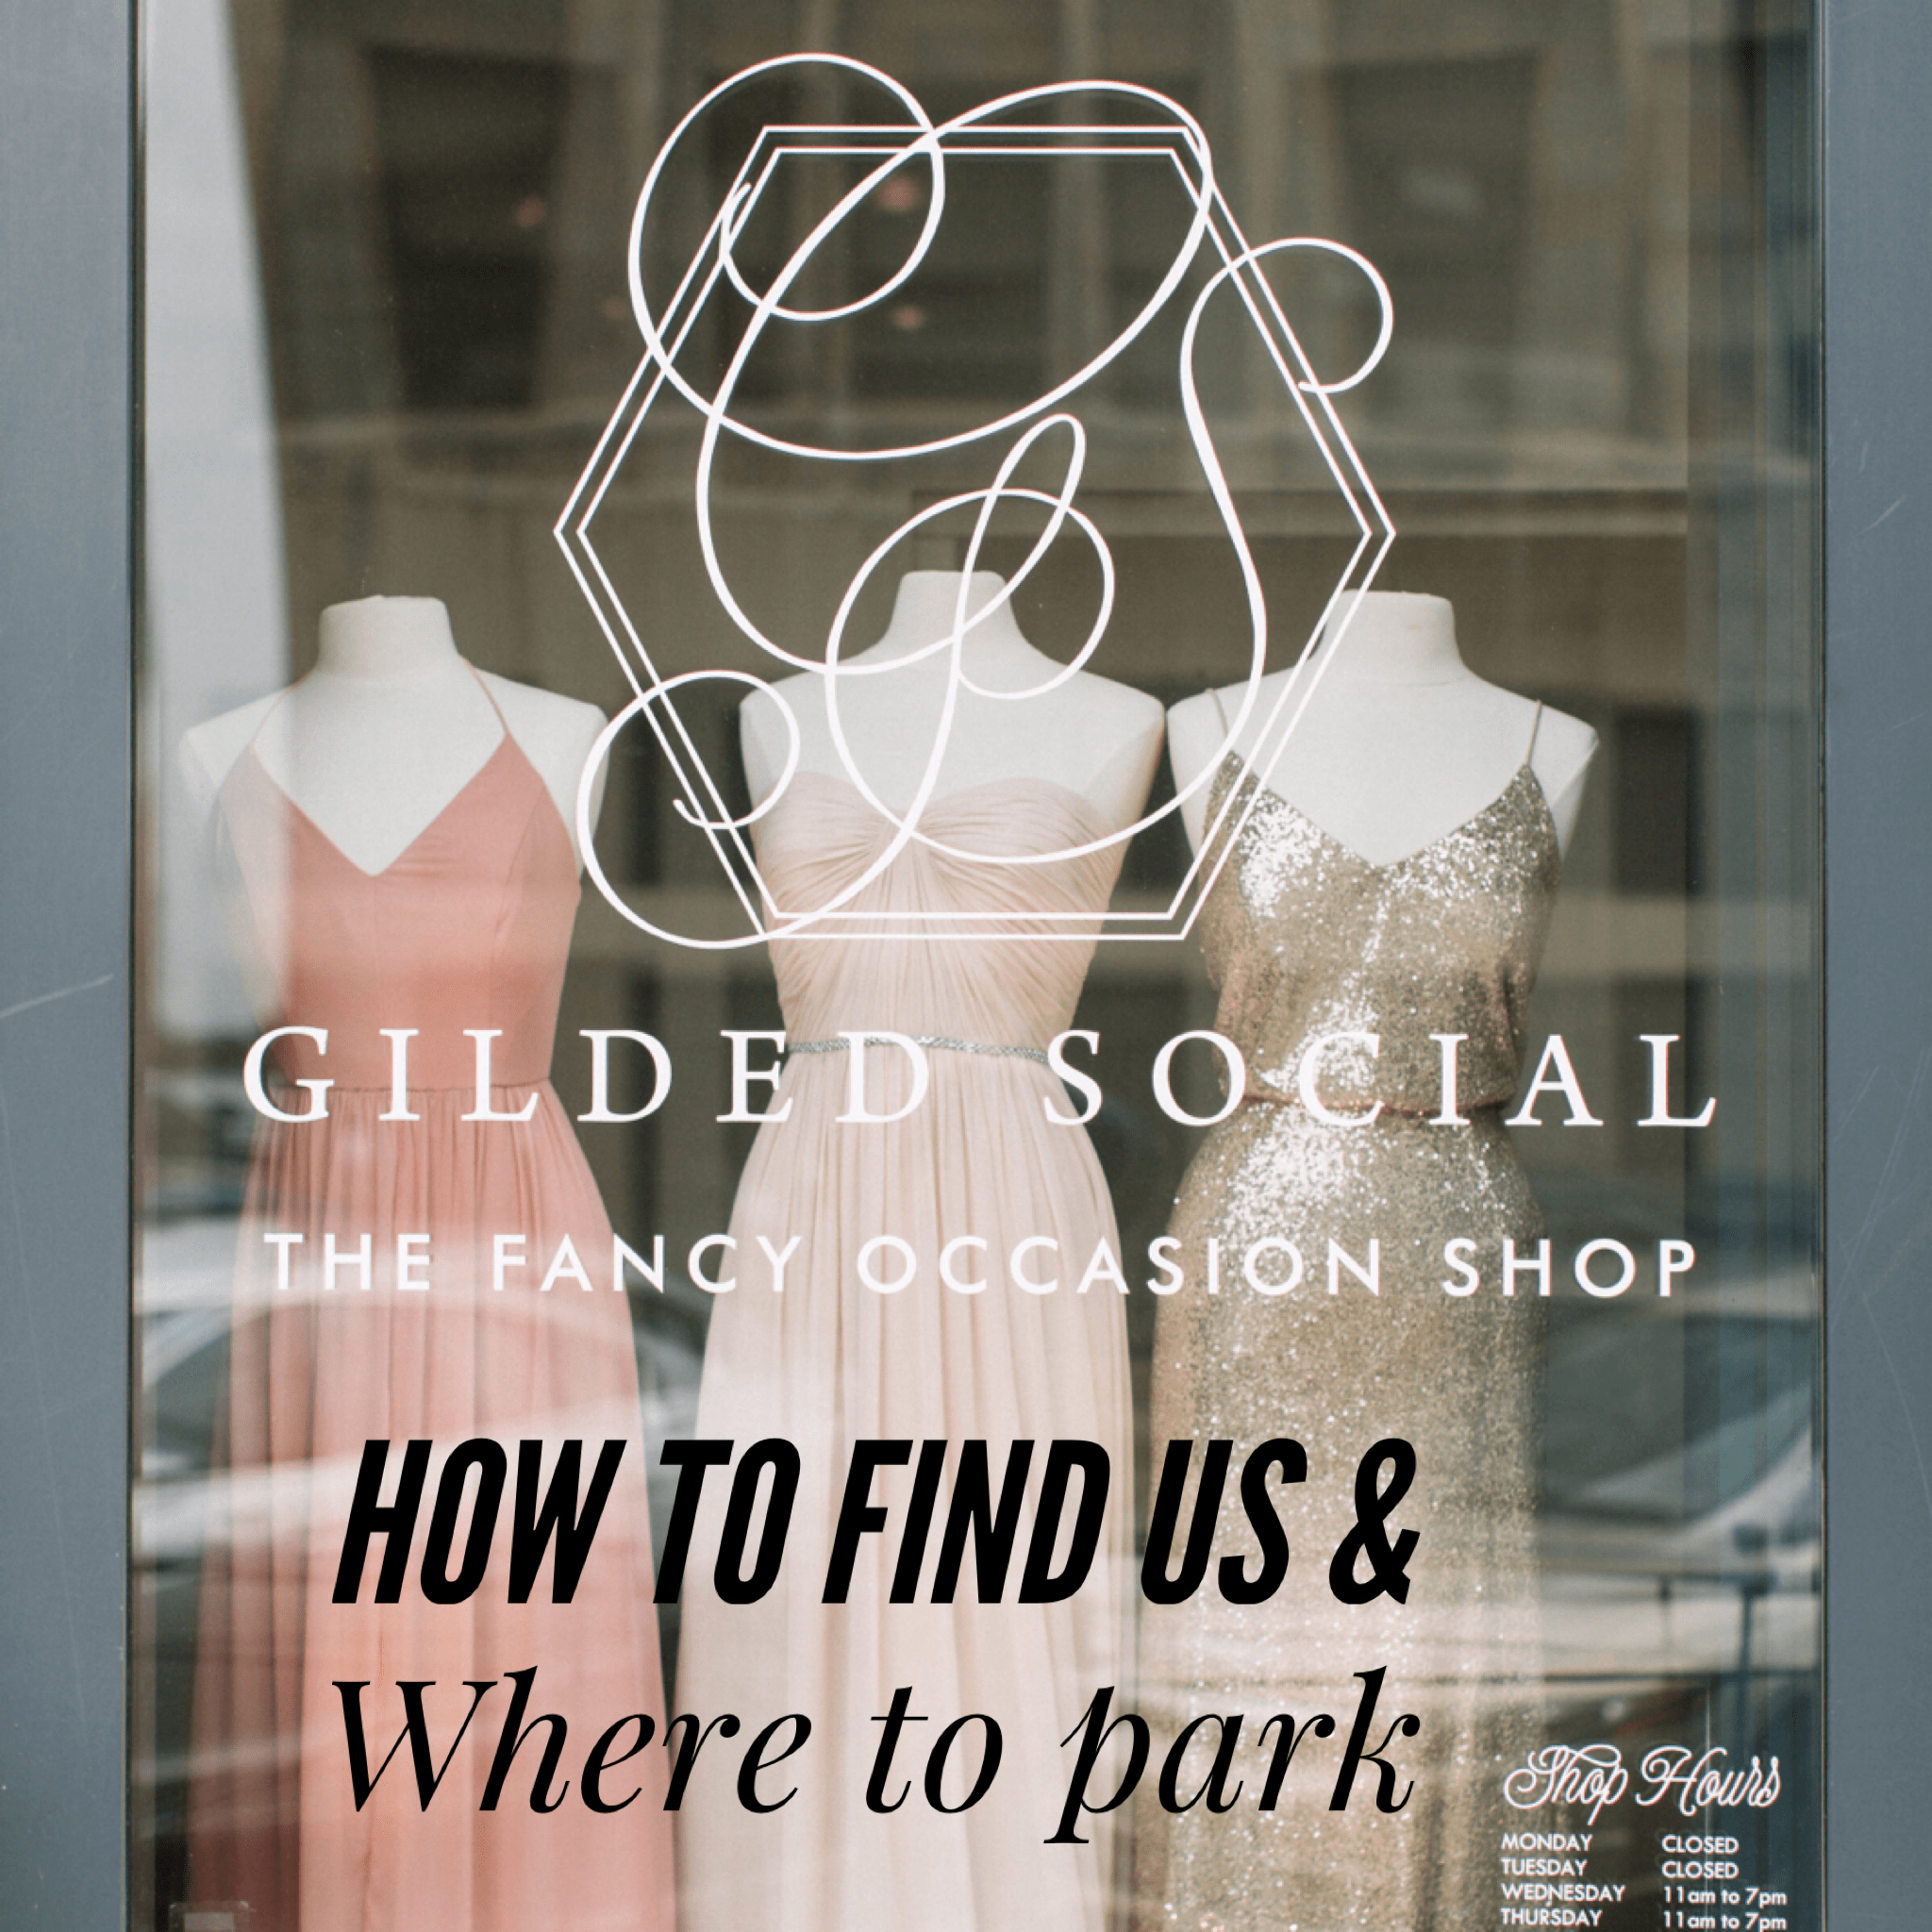 Gilded Social is downtown Columbus on Gay St